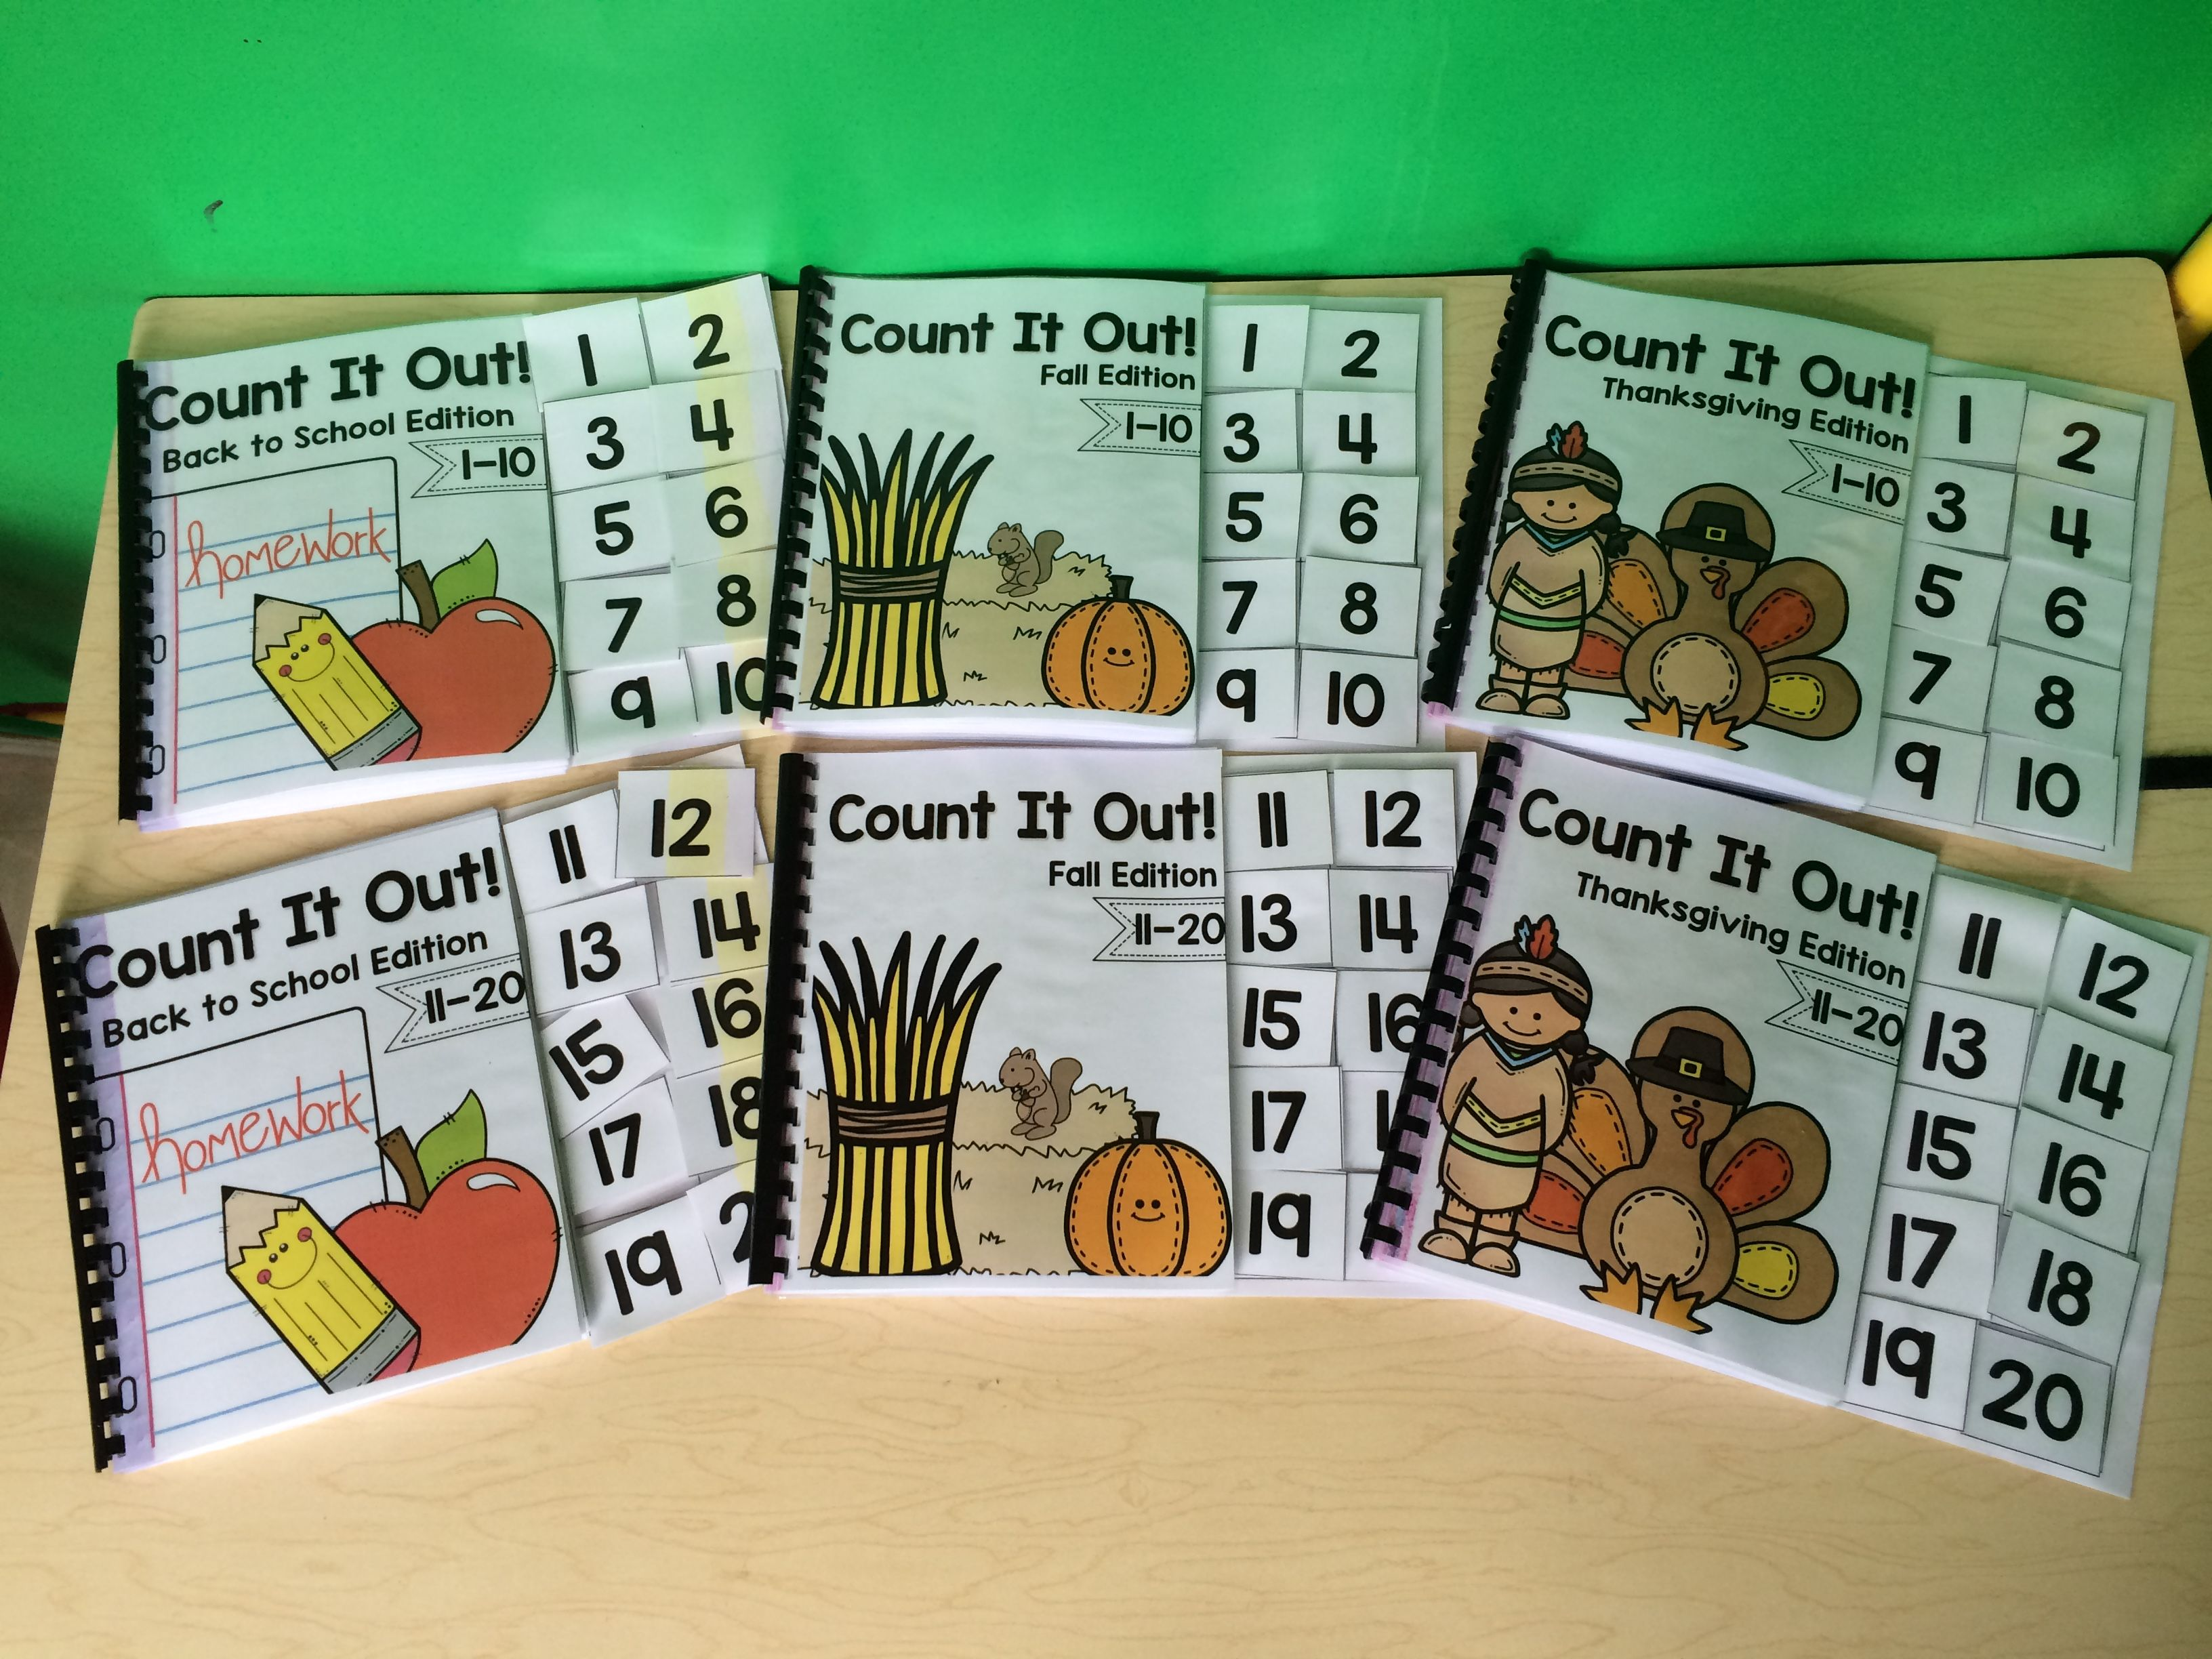 Monthly Themed Counting Books To Practice Counting Objects